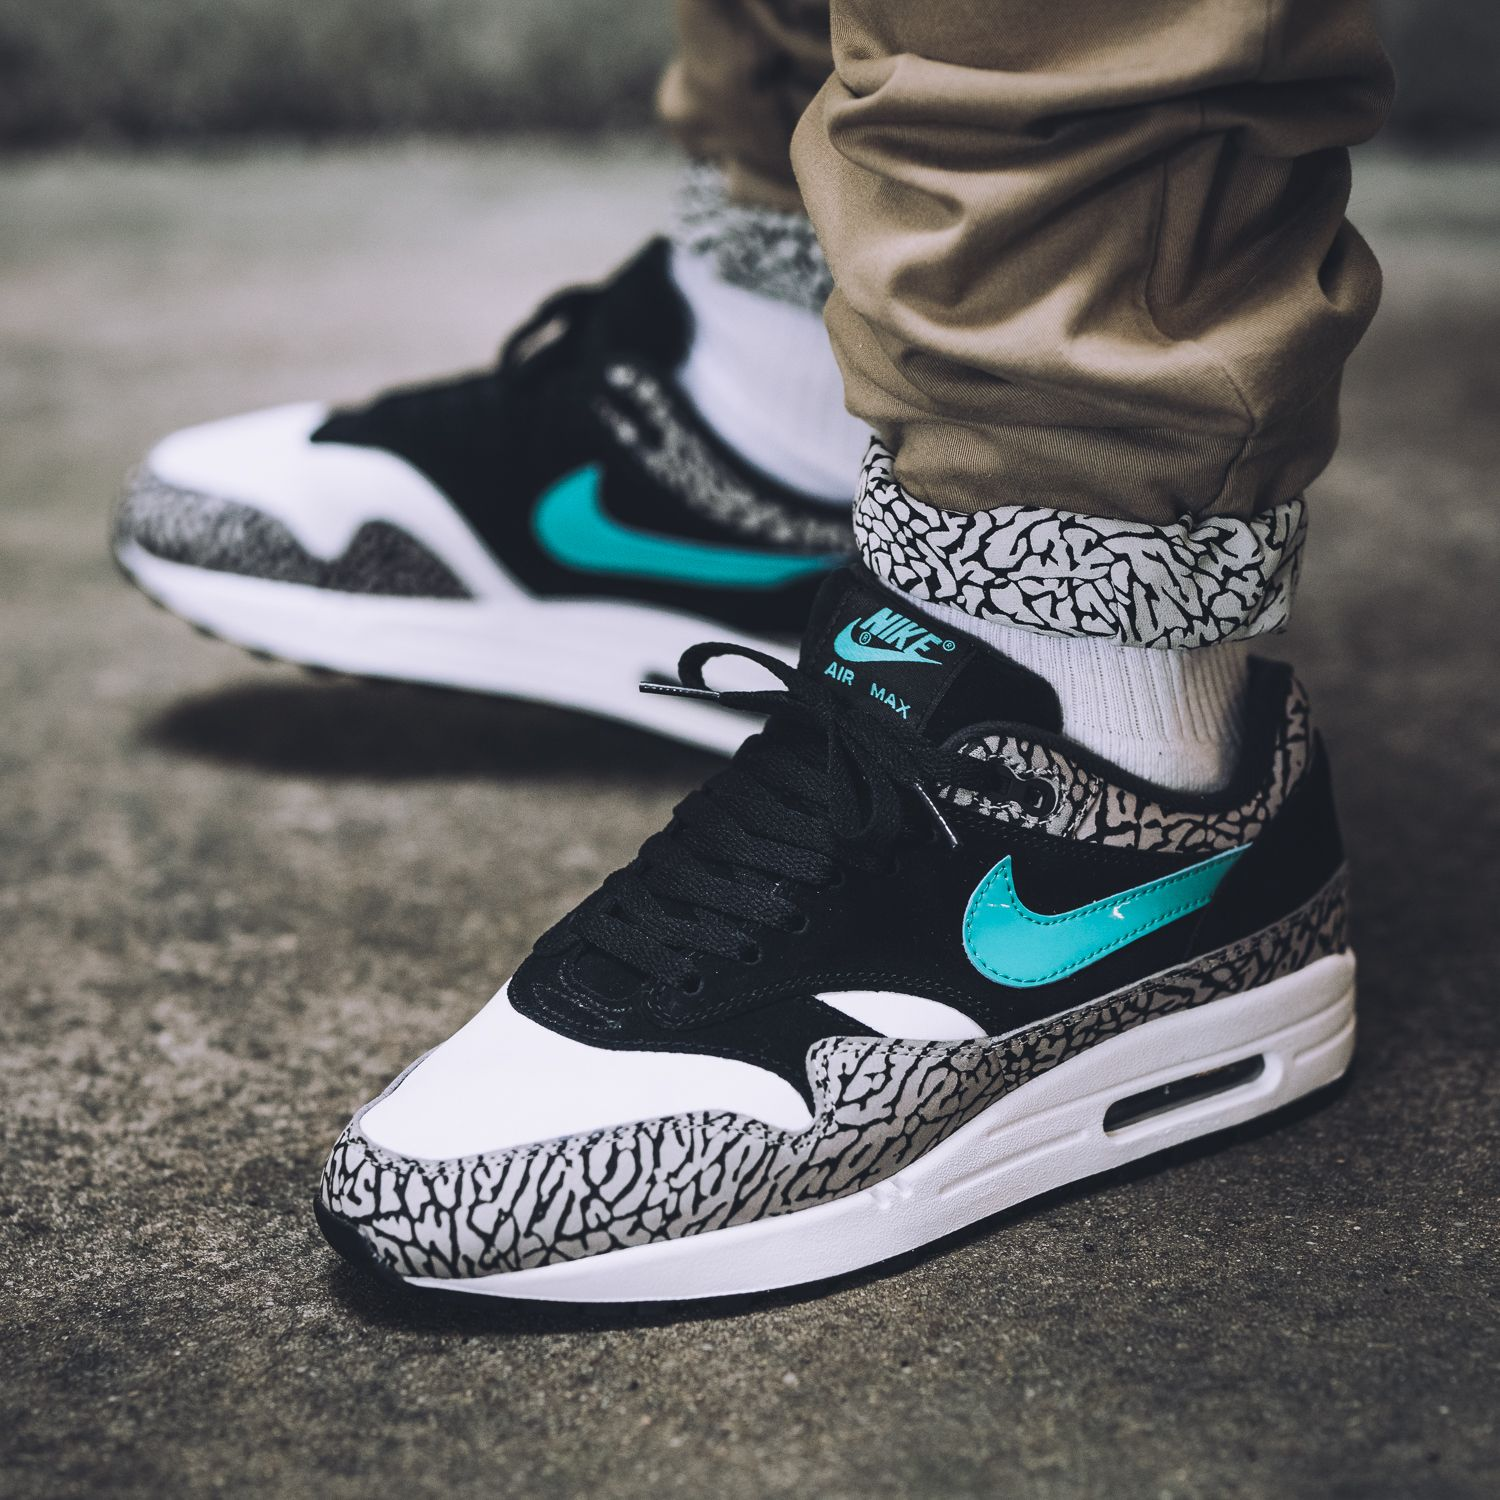 2fc0aa2e22fe88 A Detailed Look at the atmos x Nike Air Max 1  Elephant Print  with Video -  EU Kicks  Sneaker Magazine